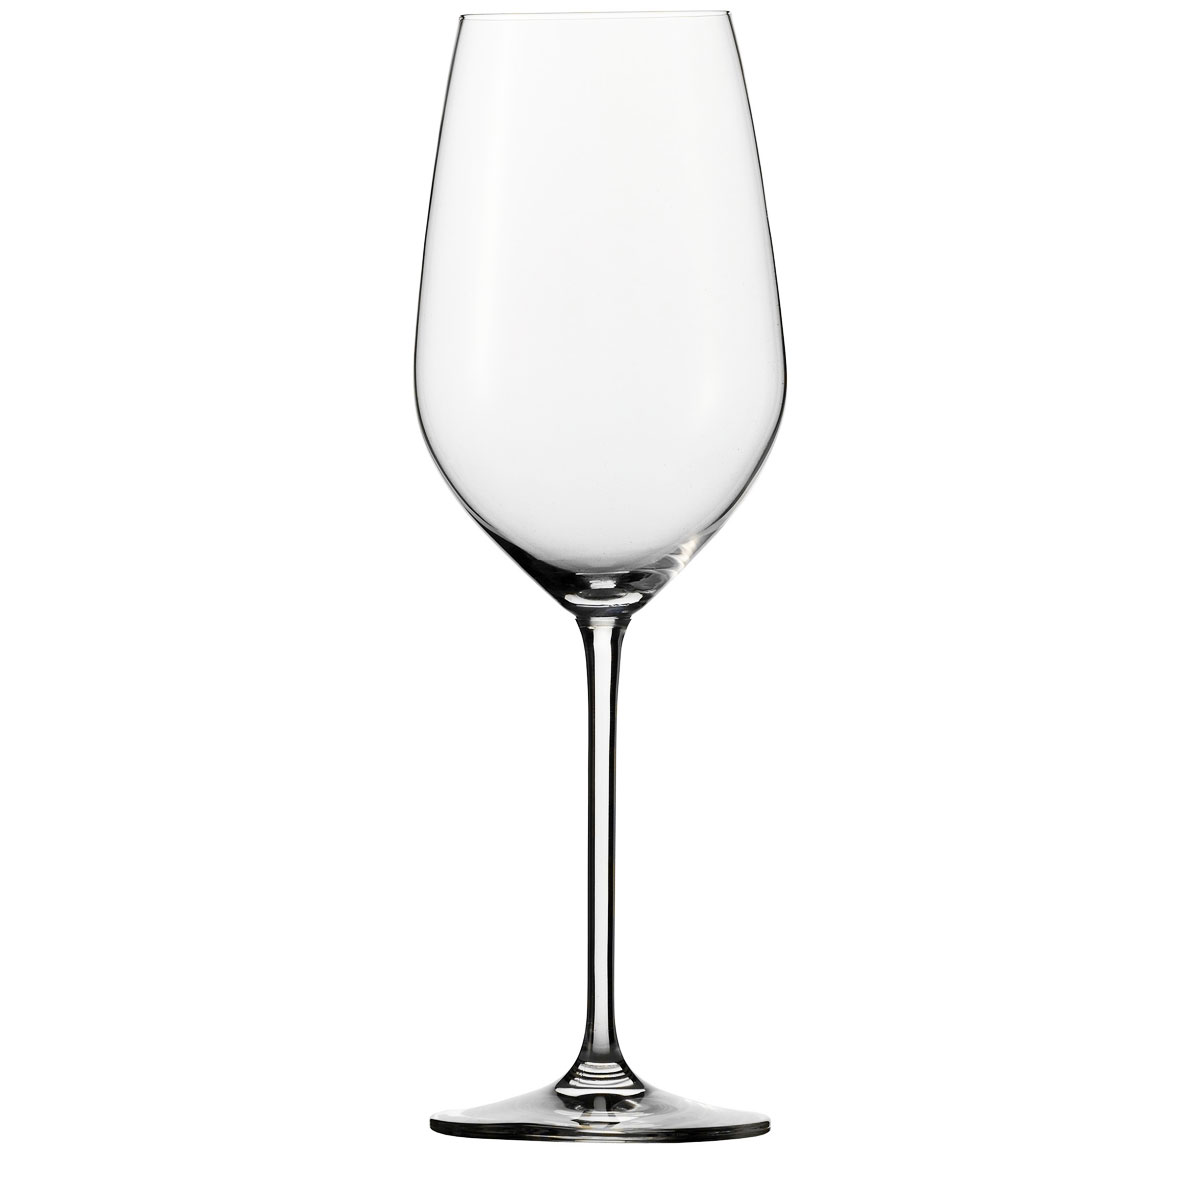 Schott Zwiesel Tritan Crystal, Fortissimo Bordeaux, Cabernet Glass, Single